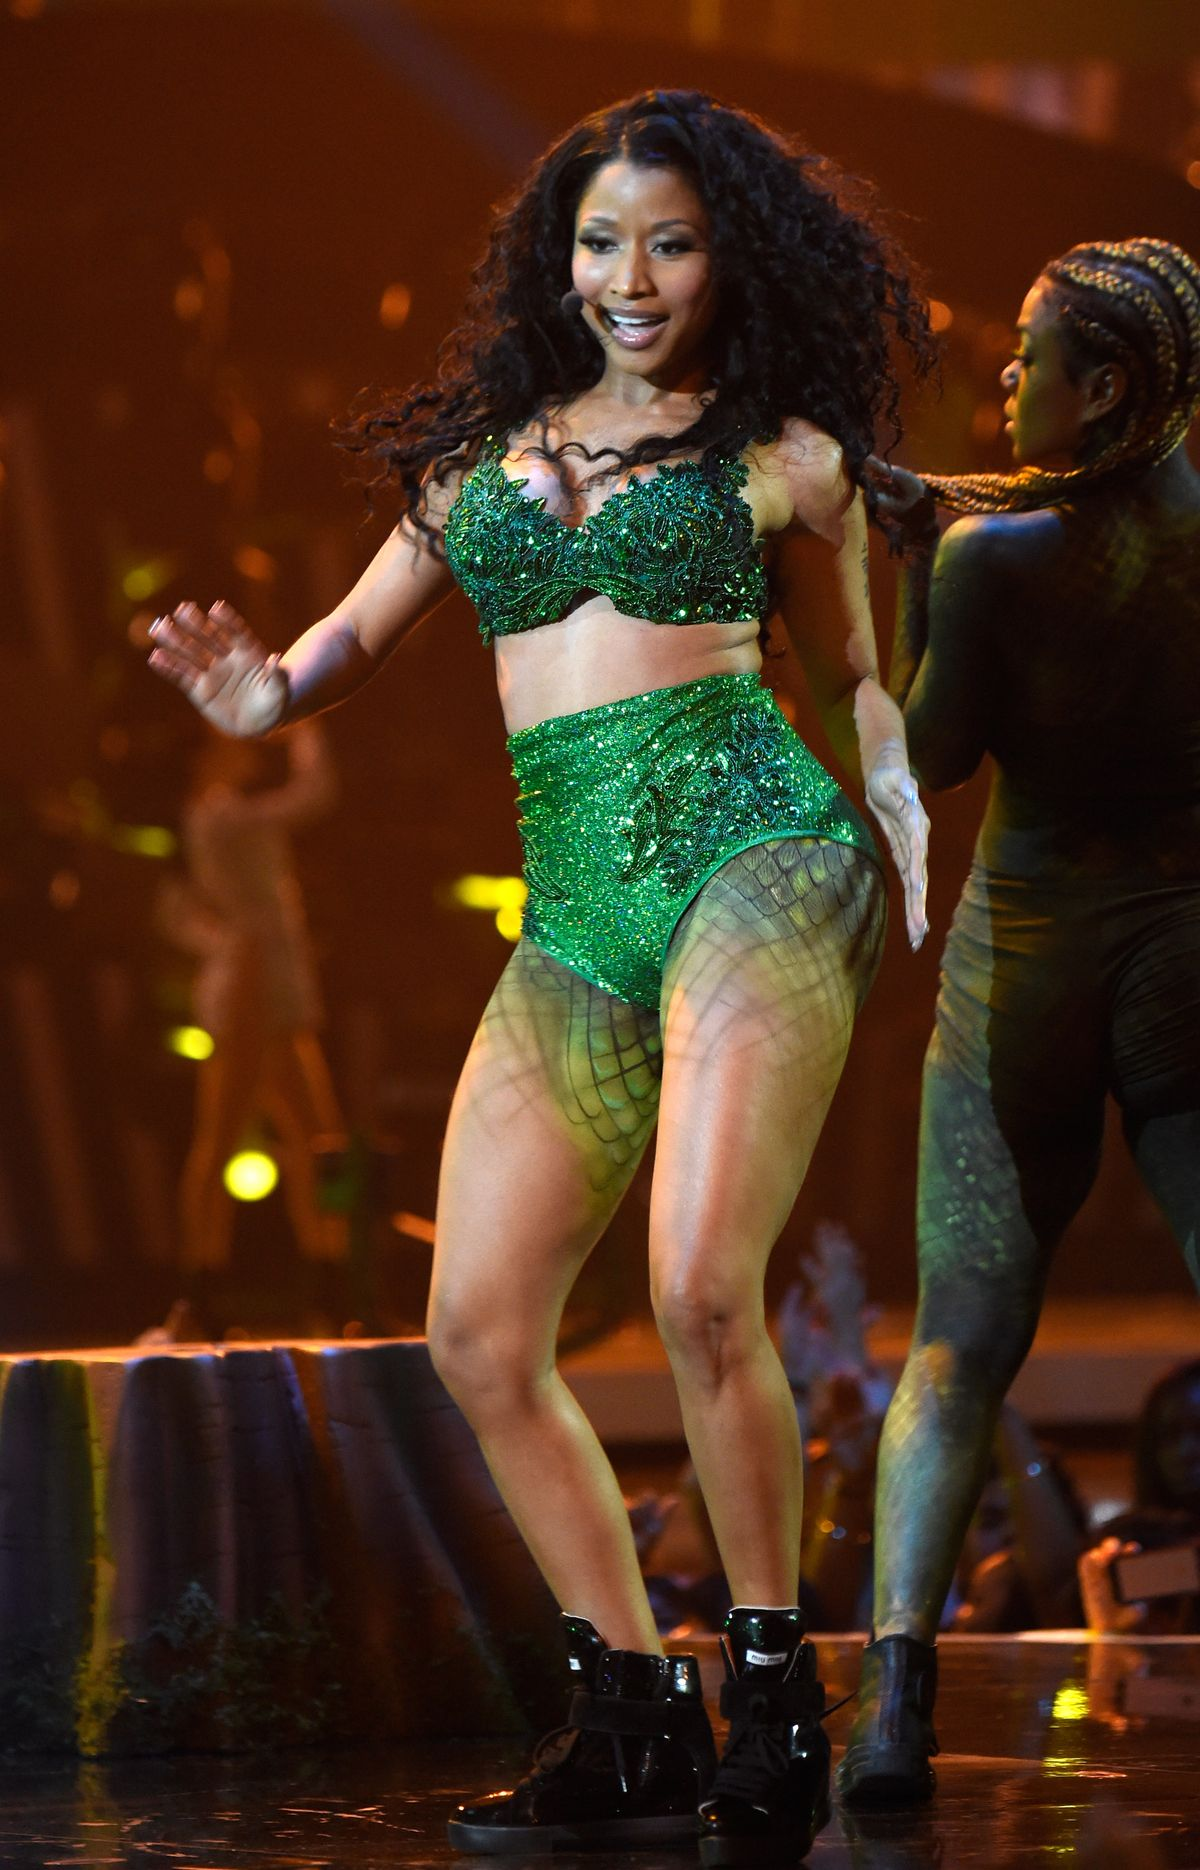 INGLEWOOD, CA - AUGUST 24: Nicki Minaj performs onstage during the 2014 MTV Video Music Awards at The Forum on August 24, 2014 in Inglewood, California. (Photo by Kevin Mazur/MTV1415/WireImage)